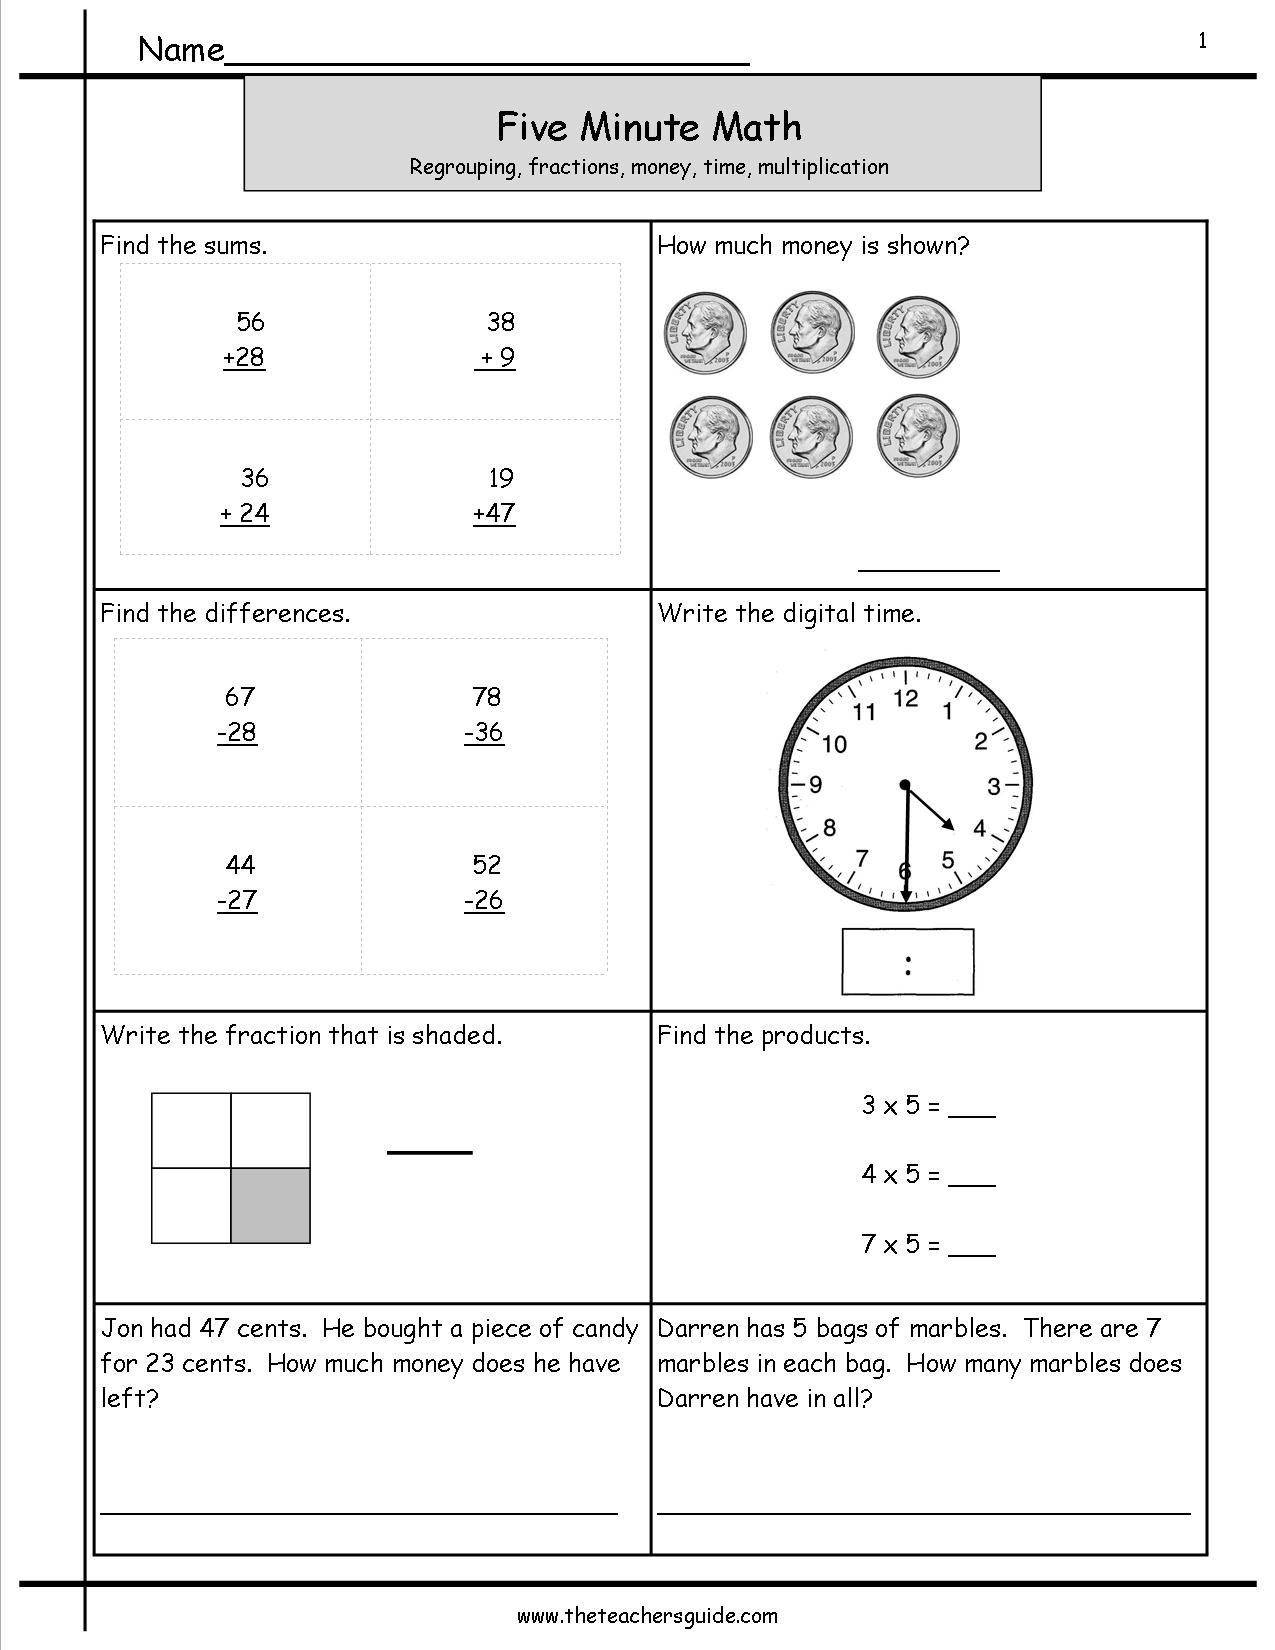 Five Minute Math Review Worksheets From The Teacher S Guide